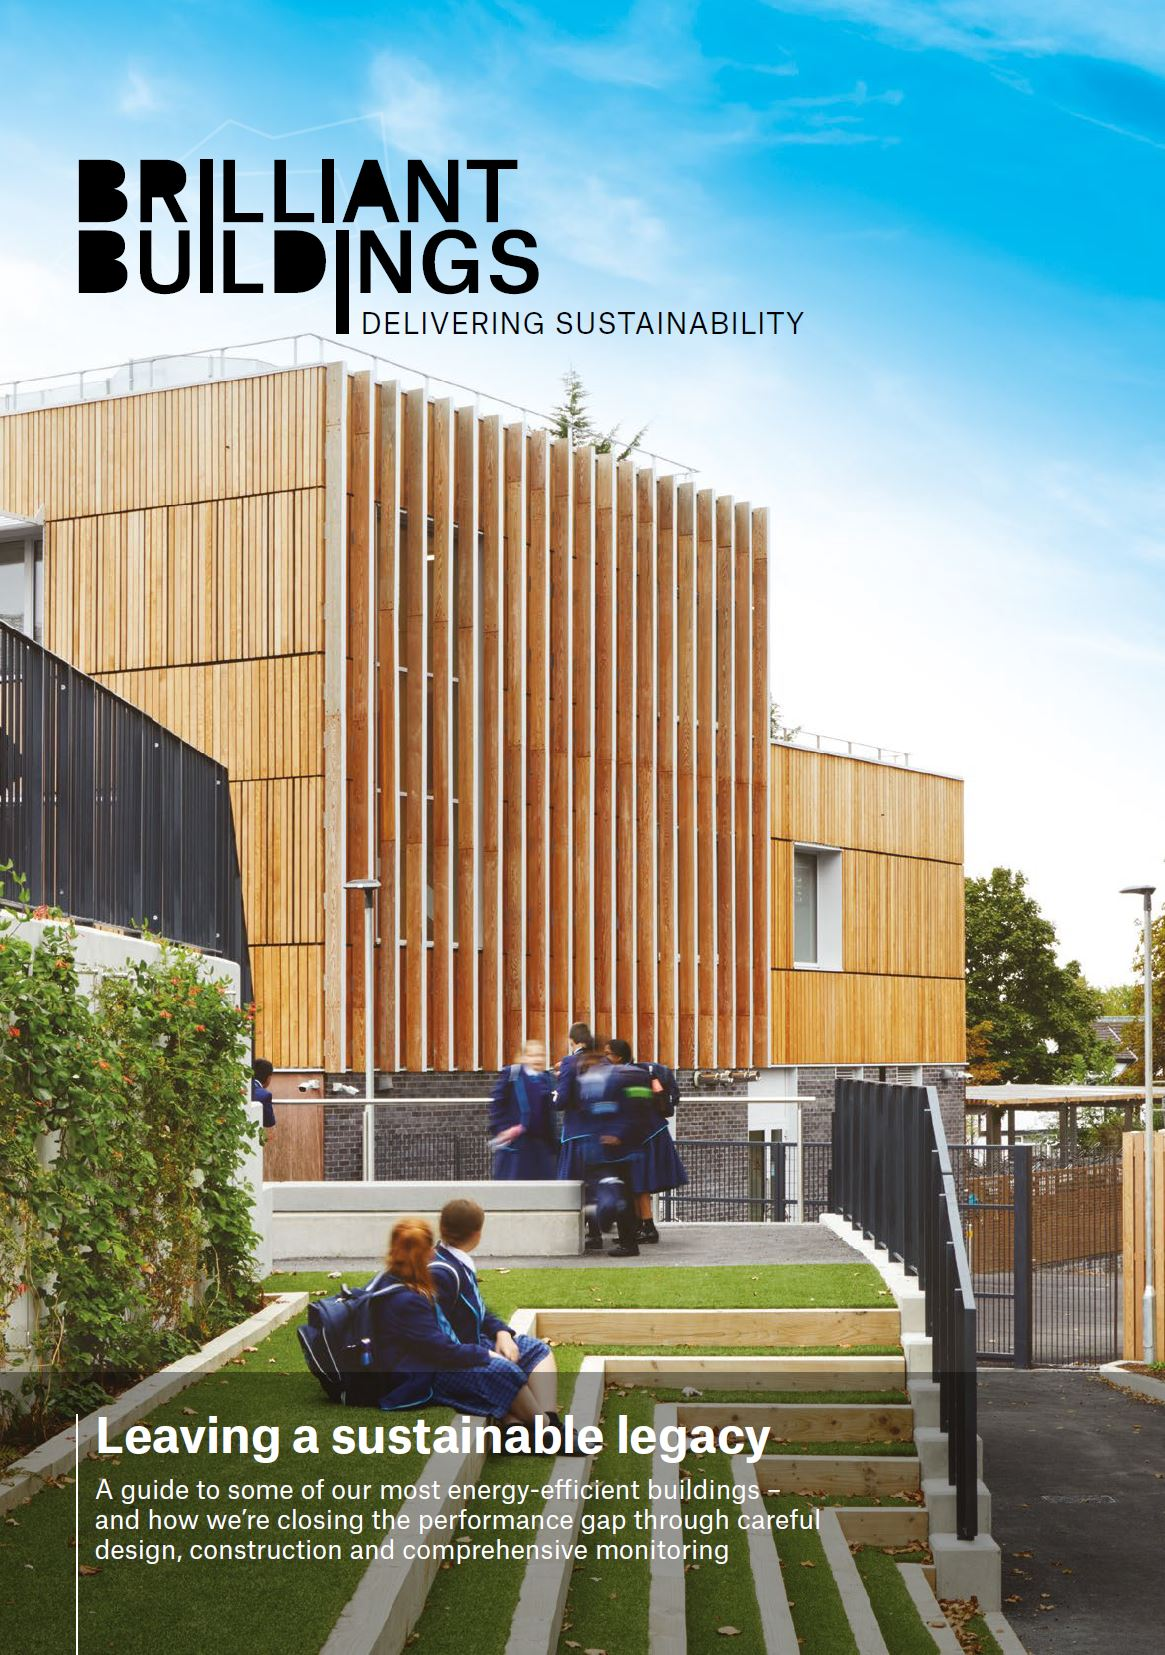 Brilliant Buildings Sustainability Cover.JPG